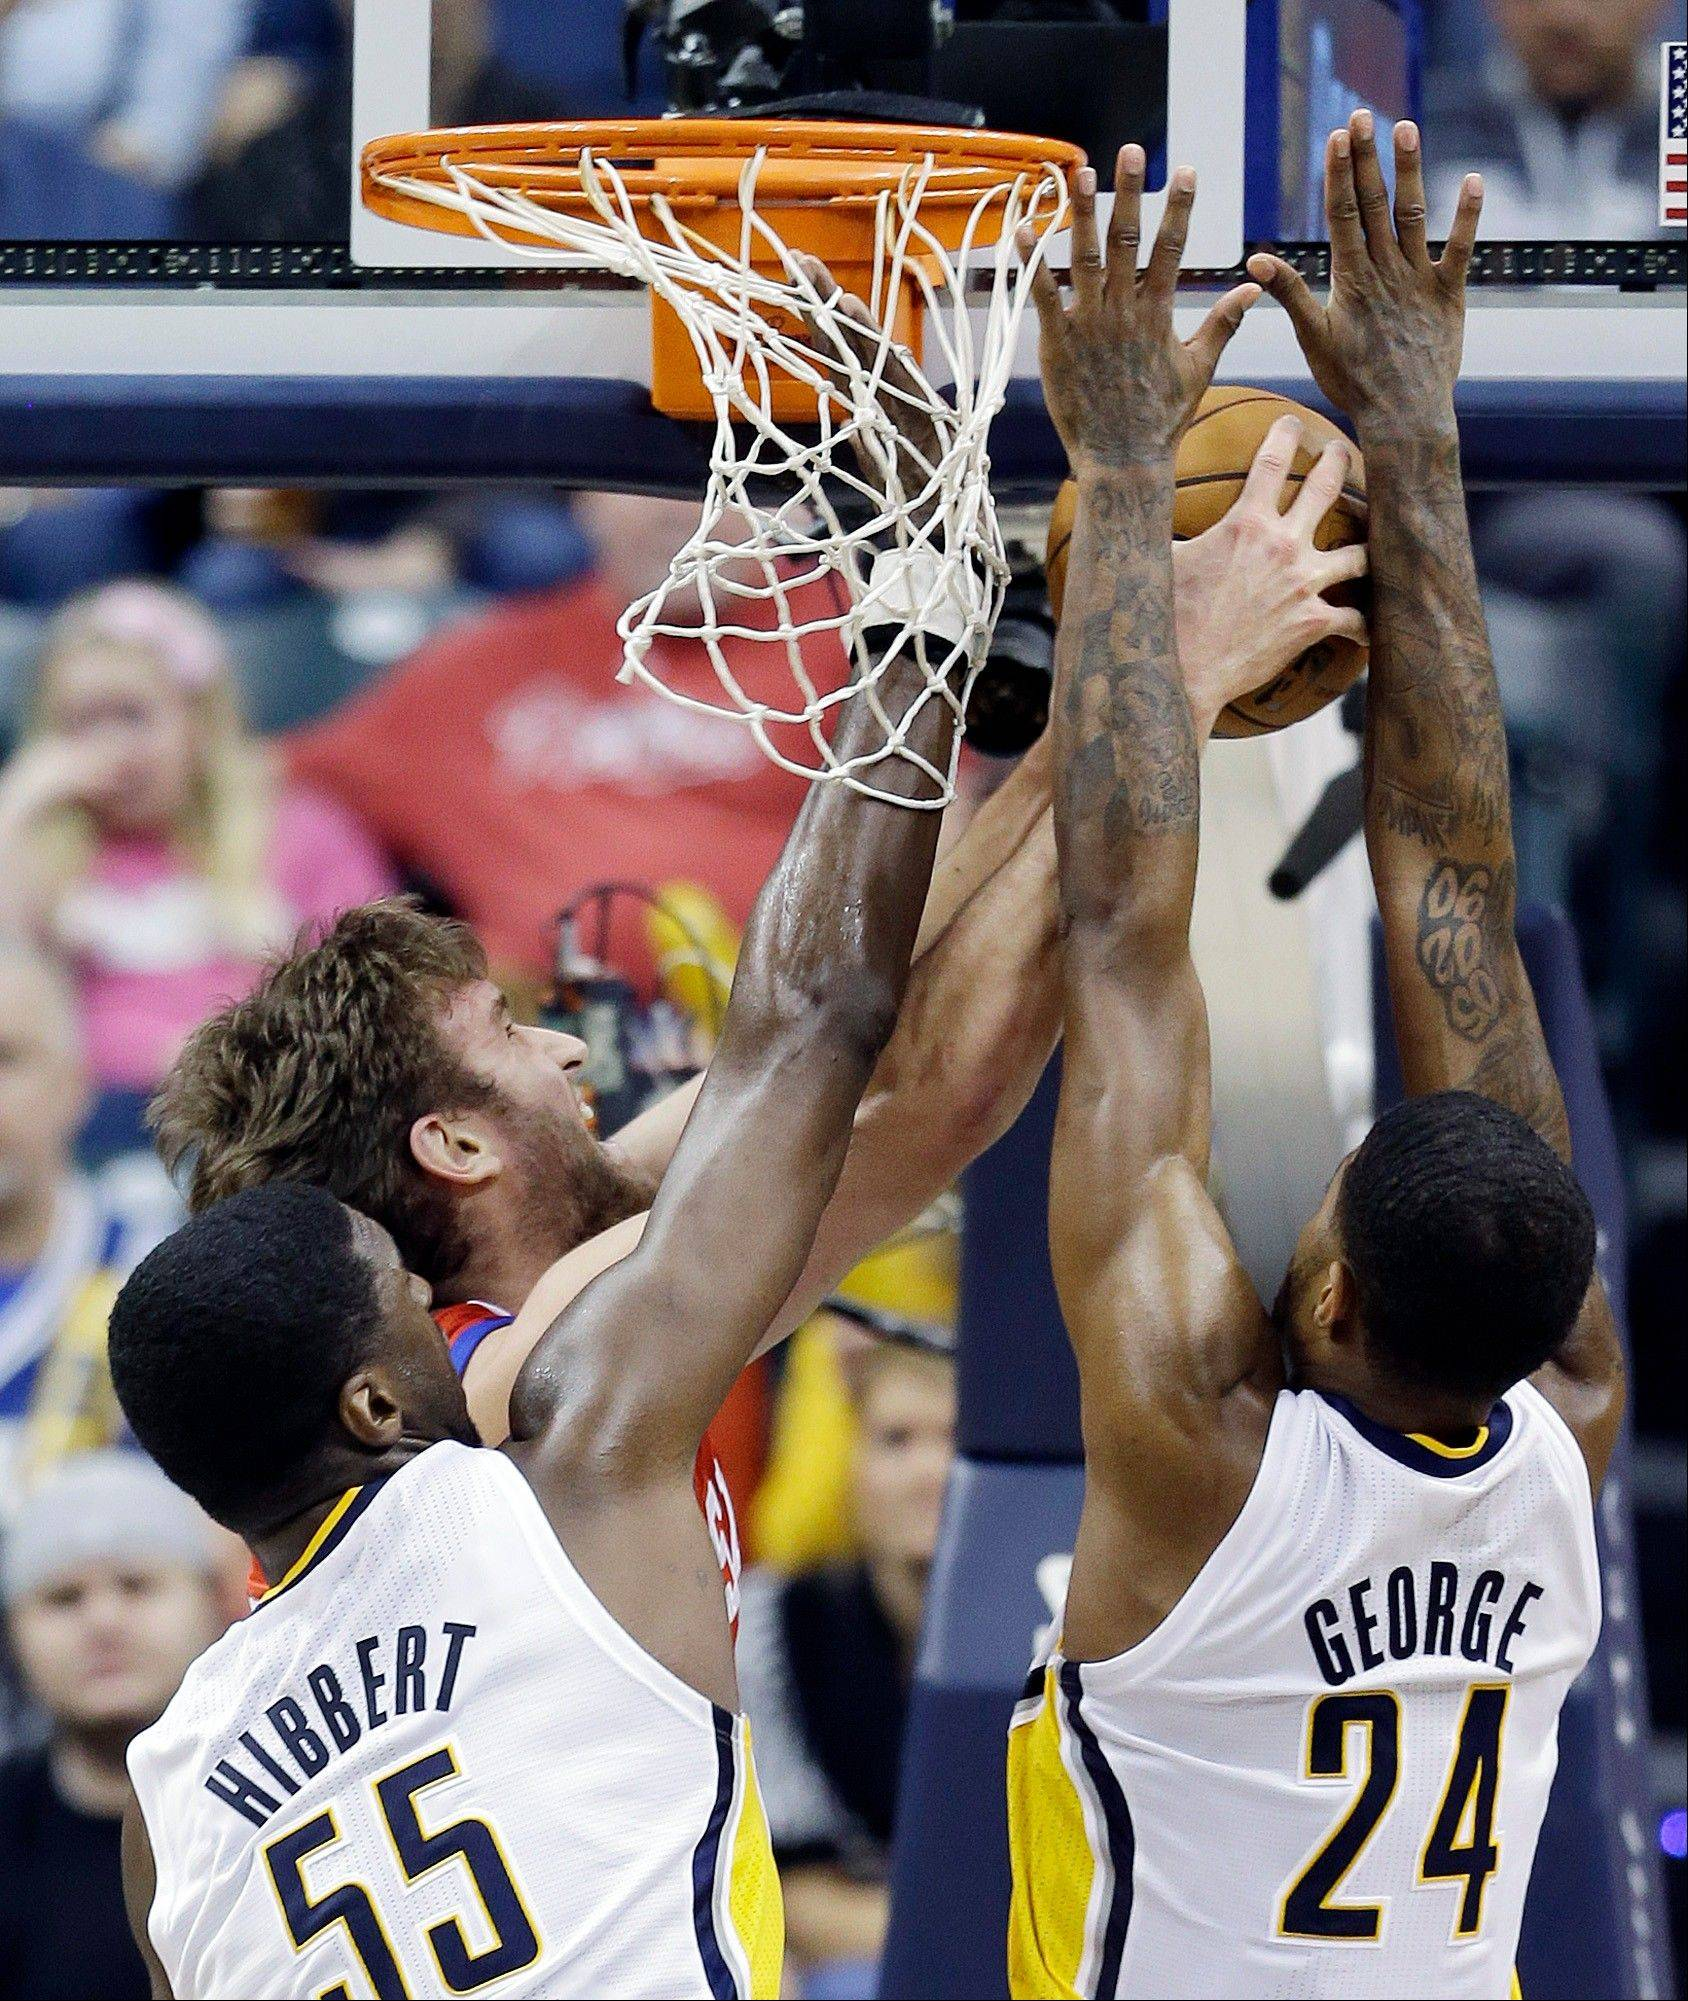 The Philadelphia 76ers' Spencer Hawes, second from left, puts up a shot against Indiana Pacers center Roy Hibbert and Paul George Friday during the second half in Indianapolis. The Pacers defeated the 76ers 95-85.